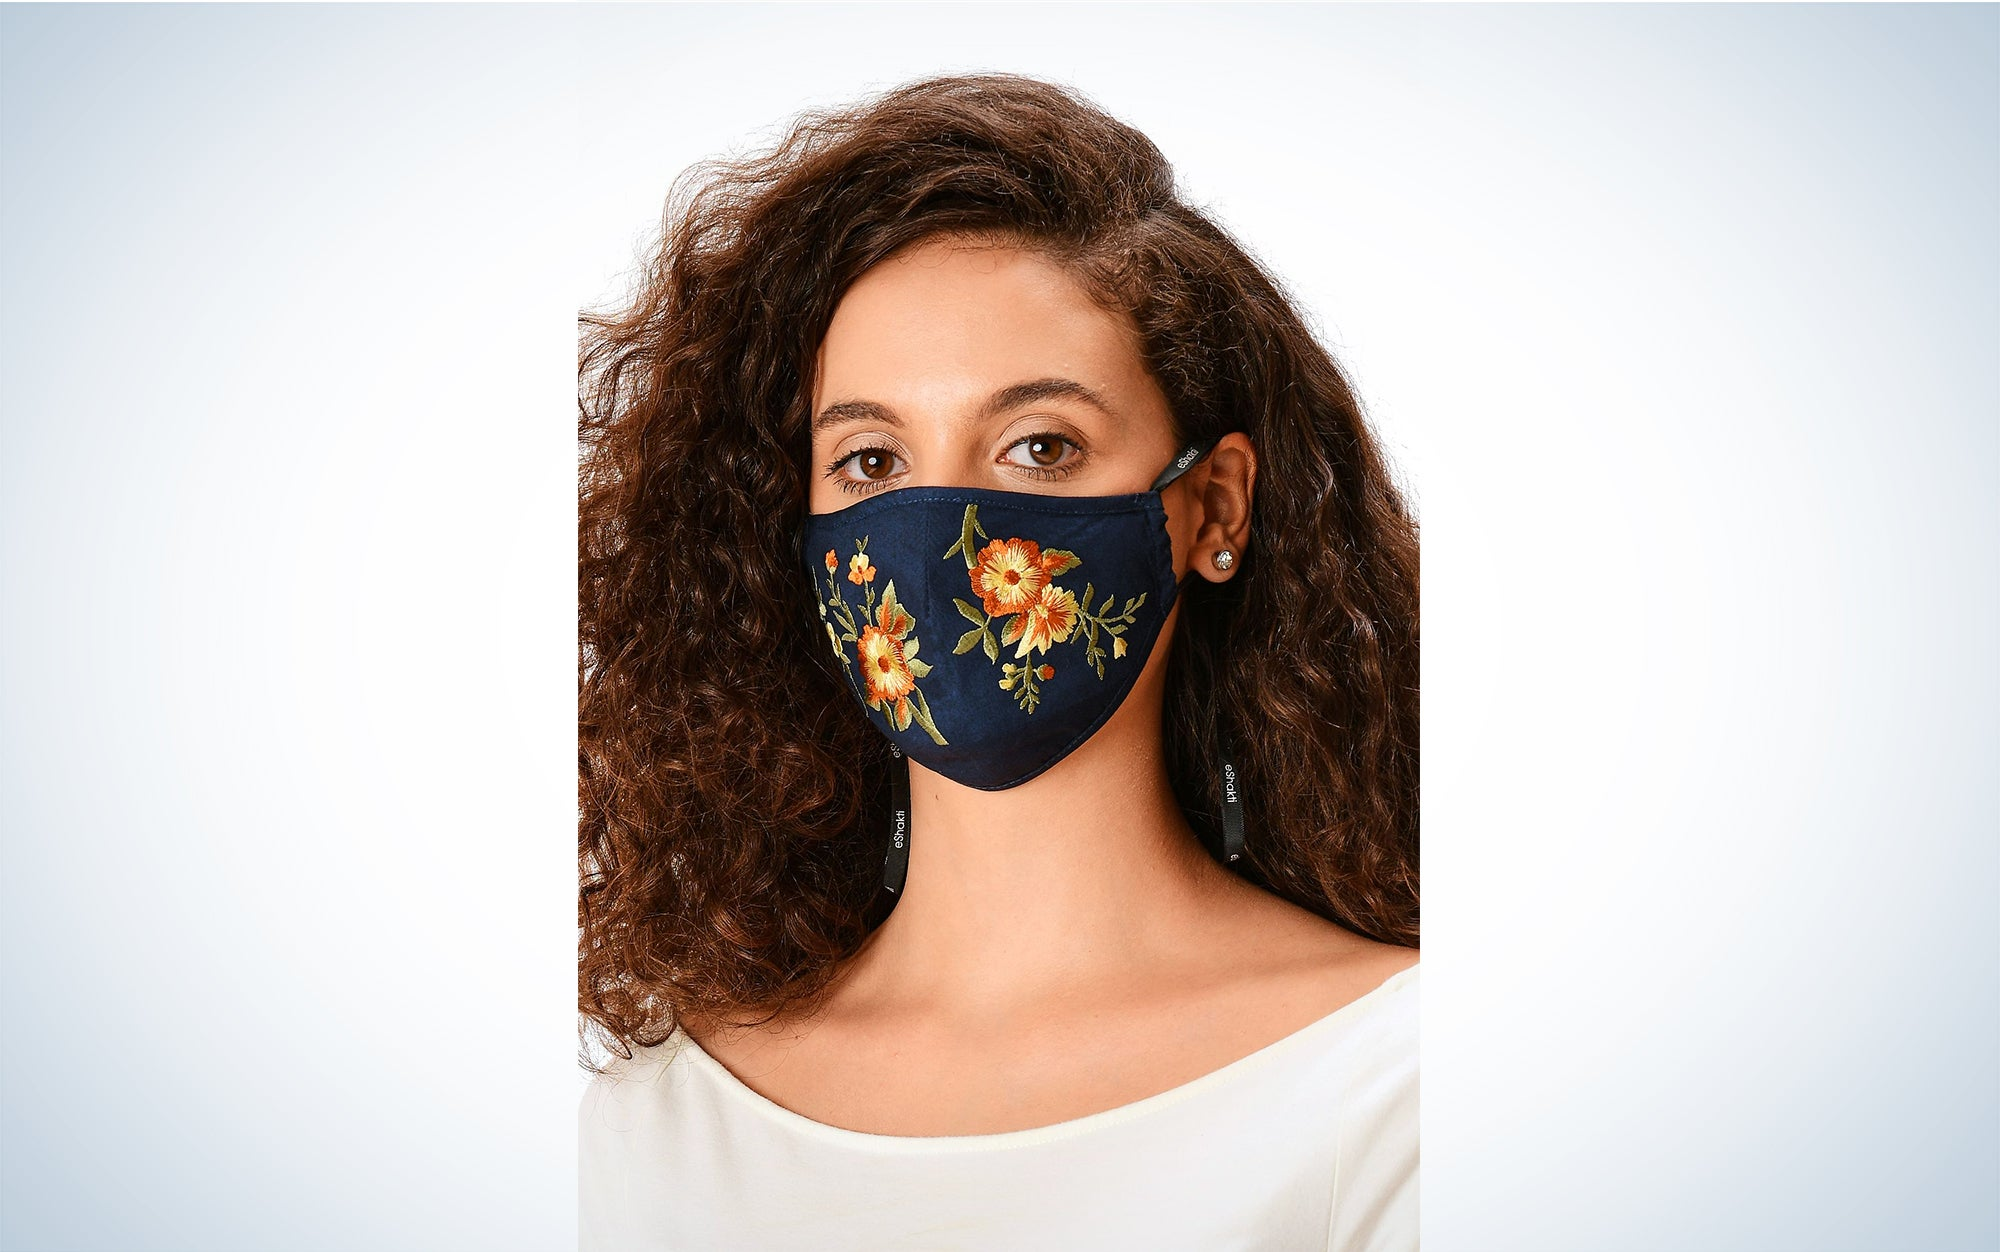 Embroidered floral face mask pattern